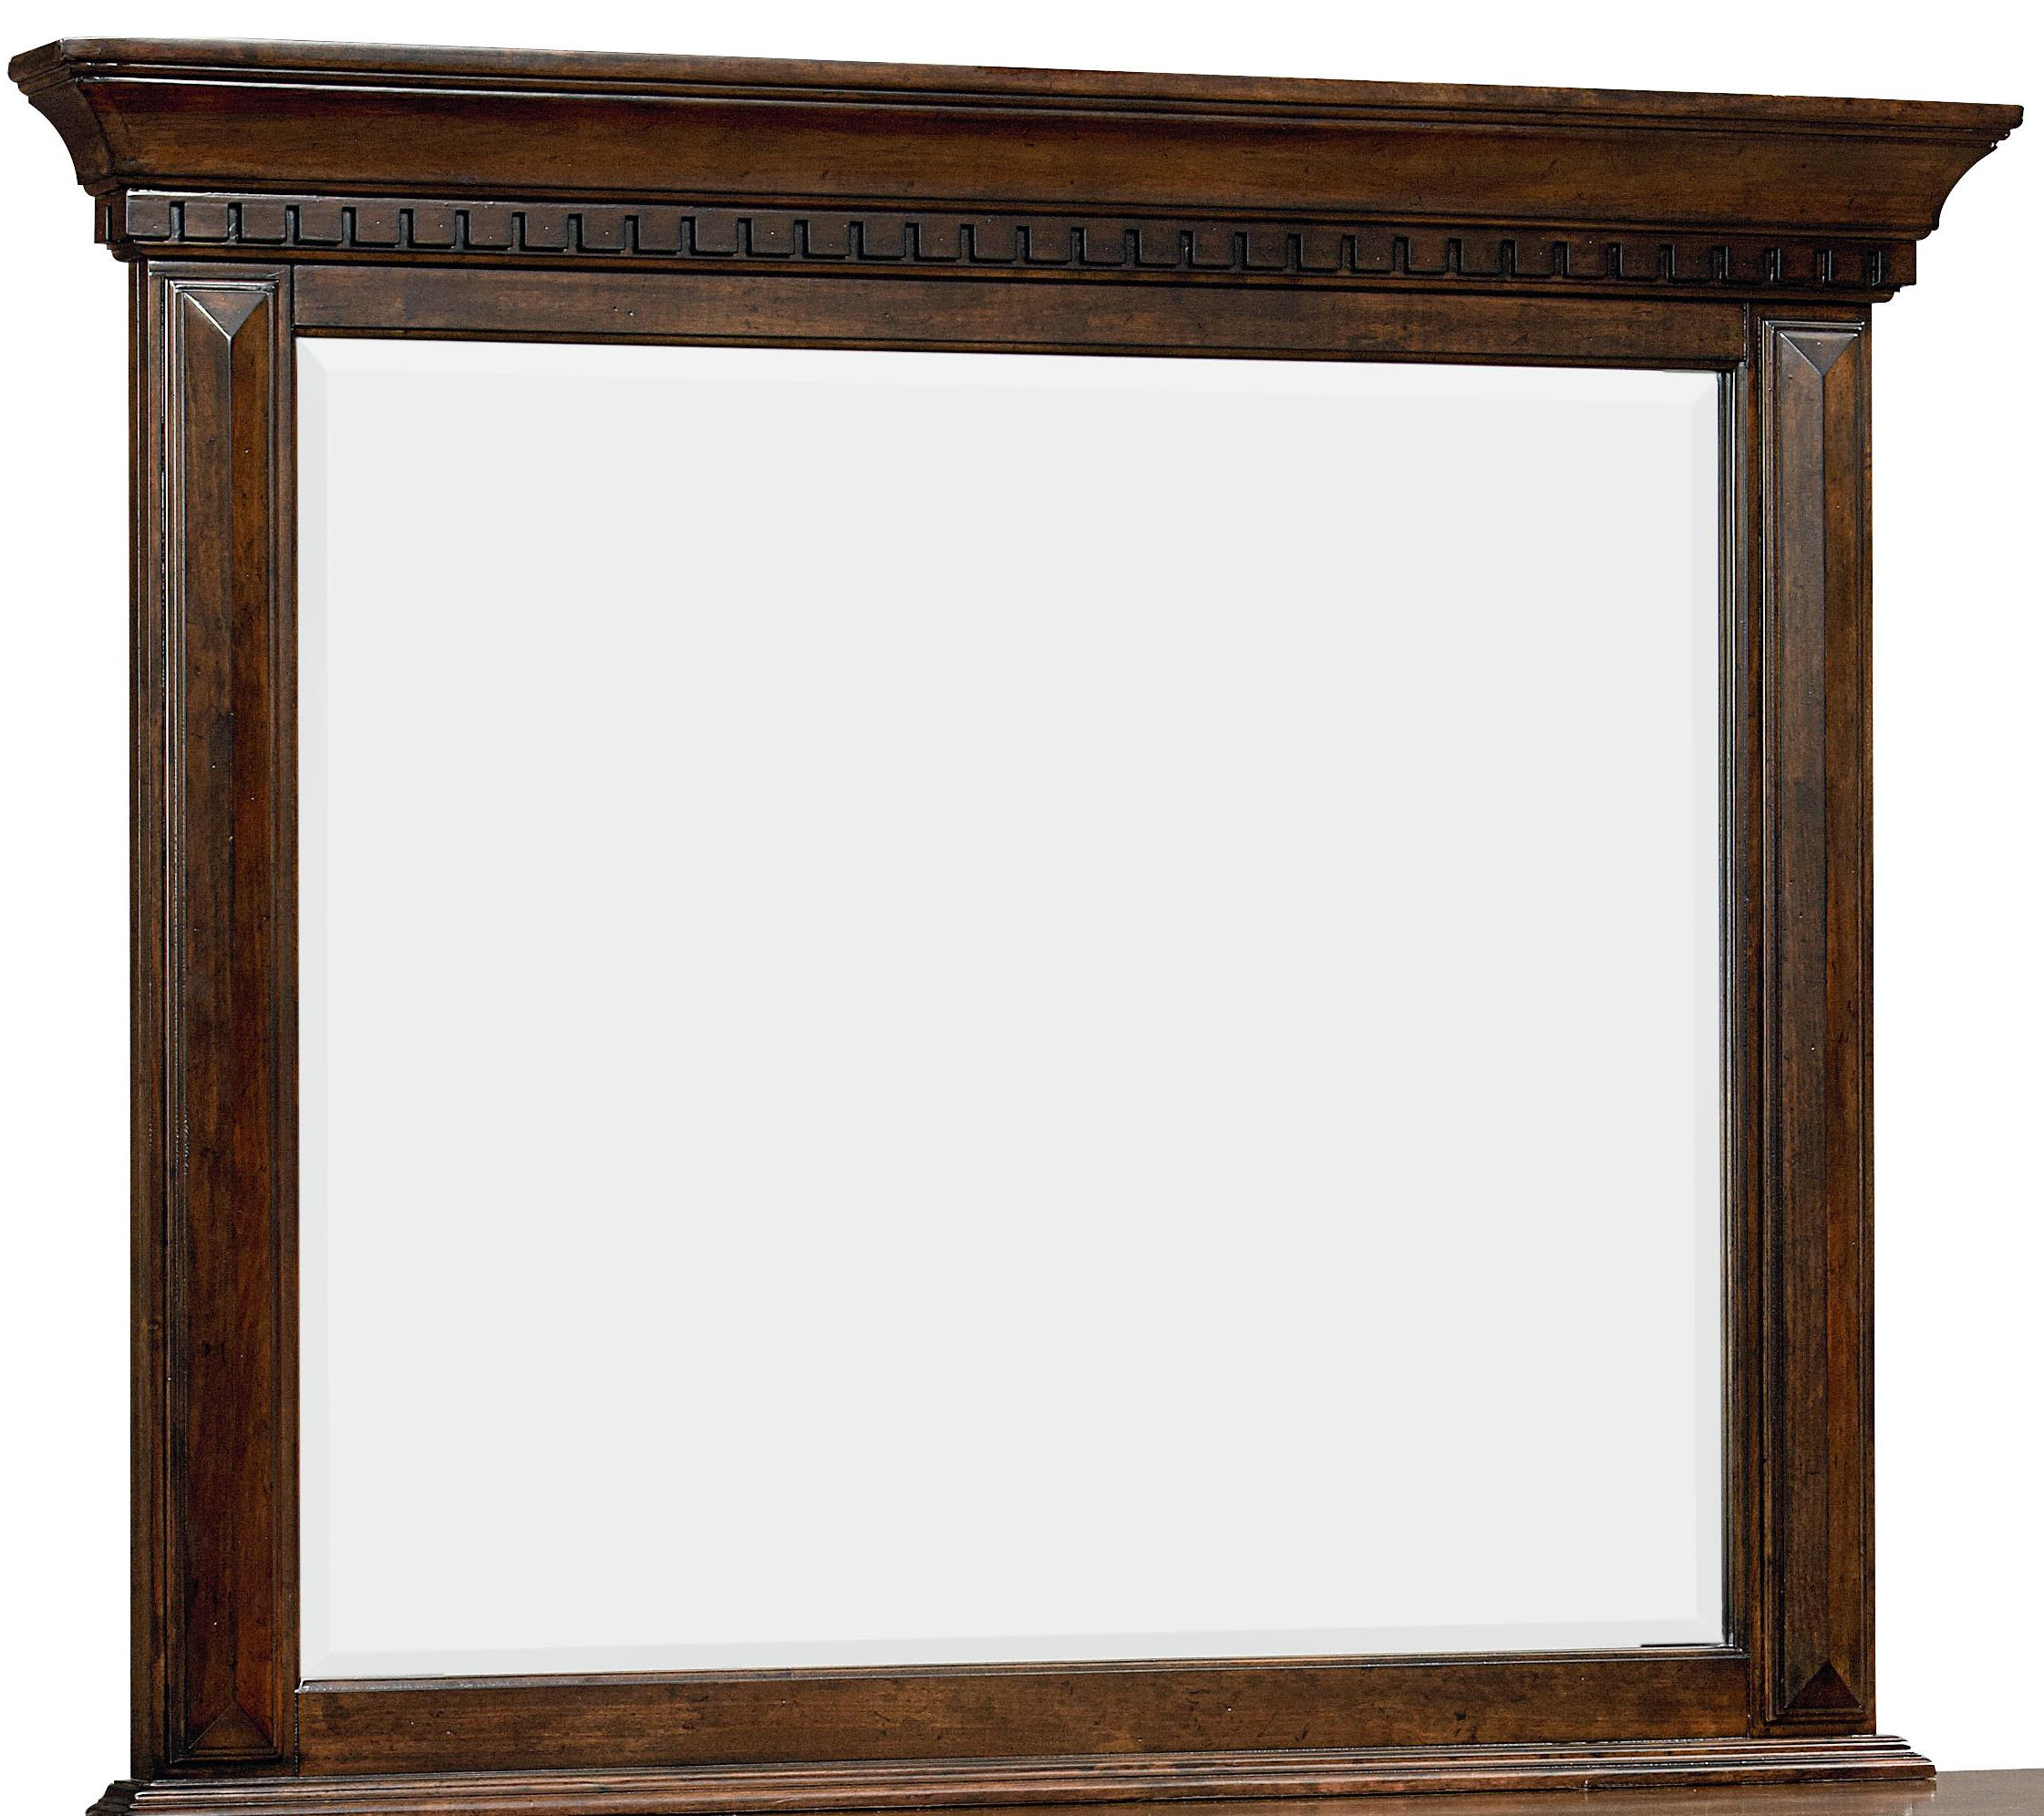 Standard Furniture Charleston Dresser Mirror - Item Number: 96008